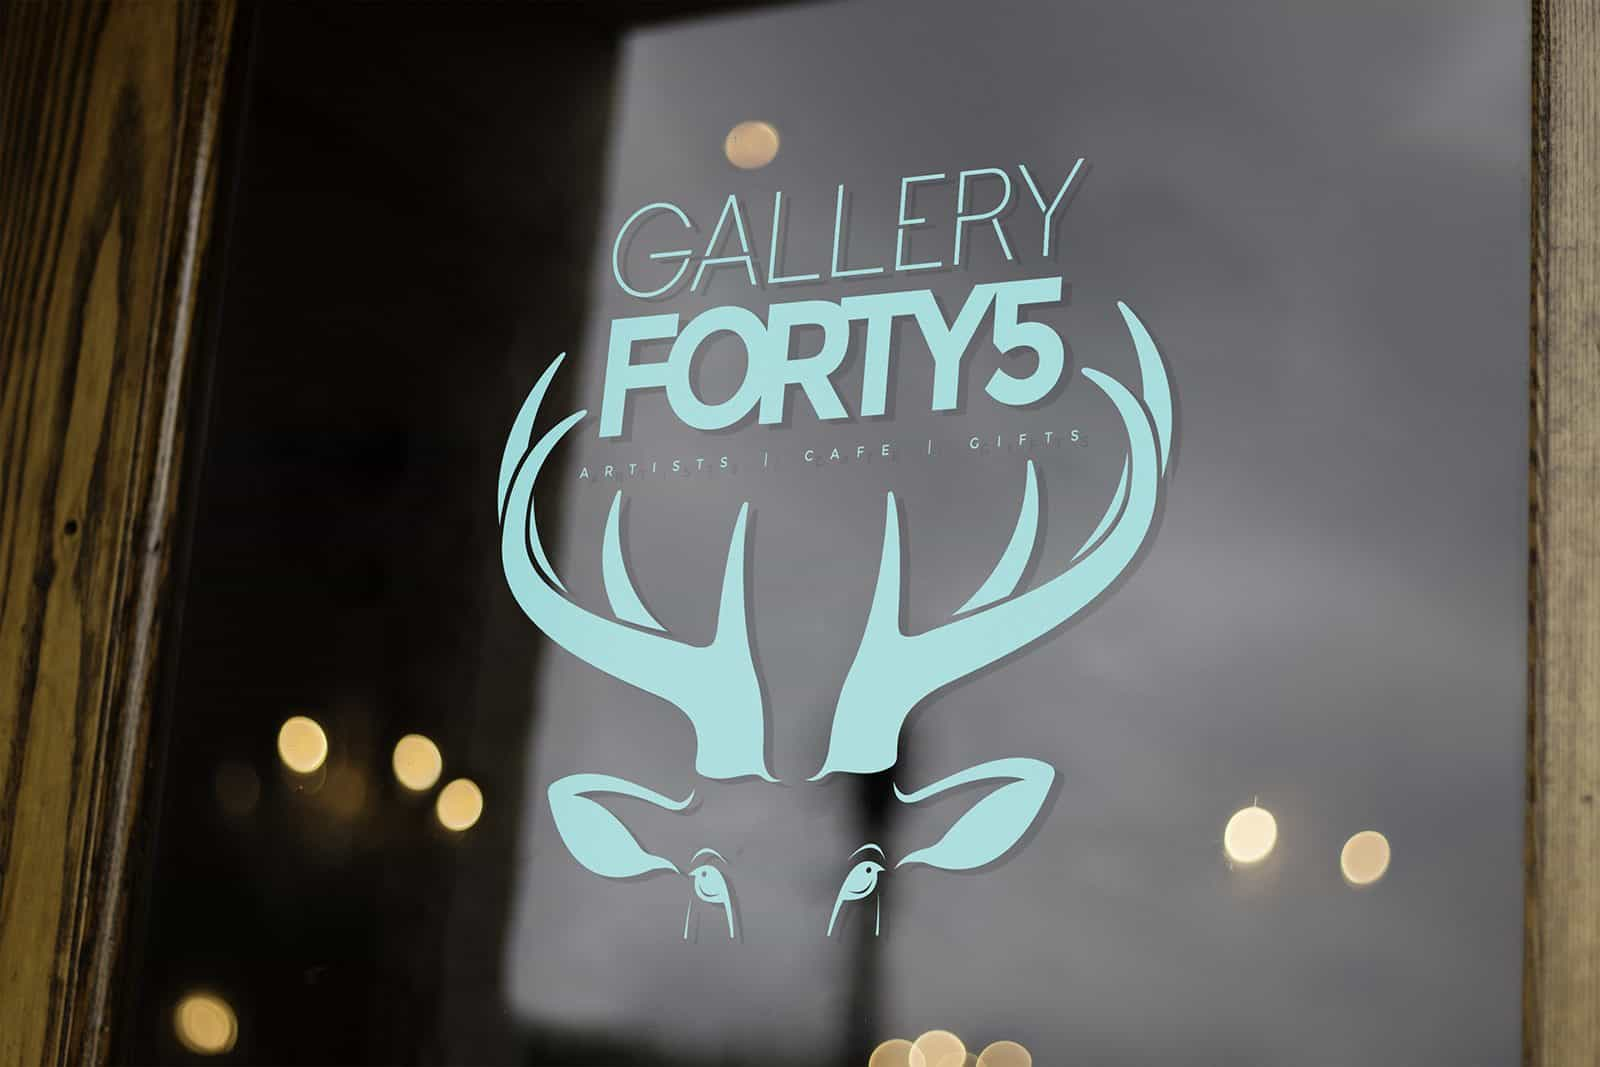 Gallery 45 window